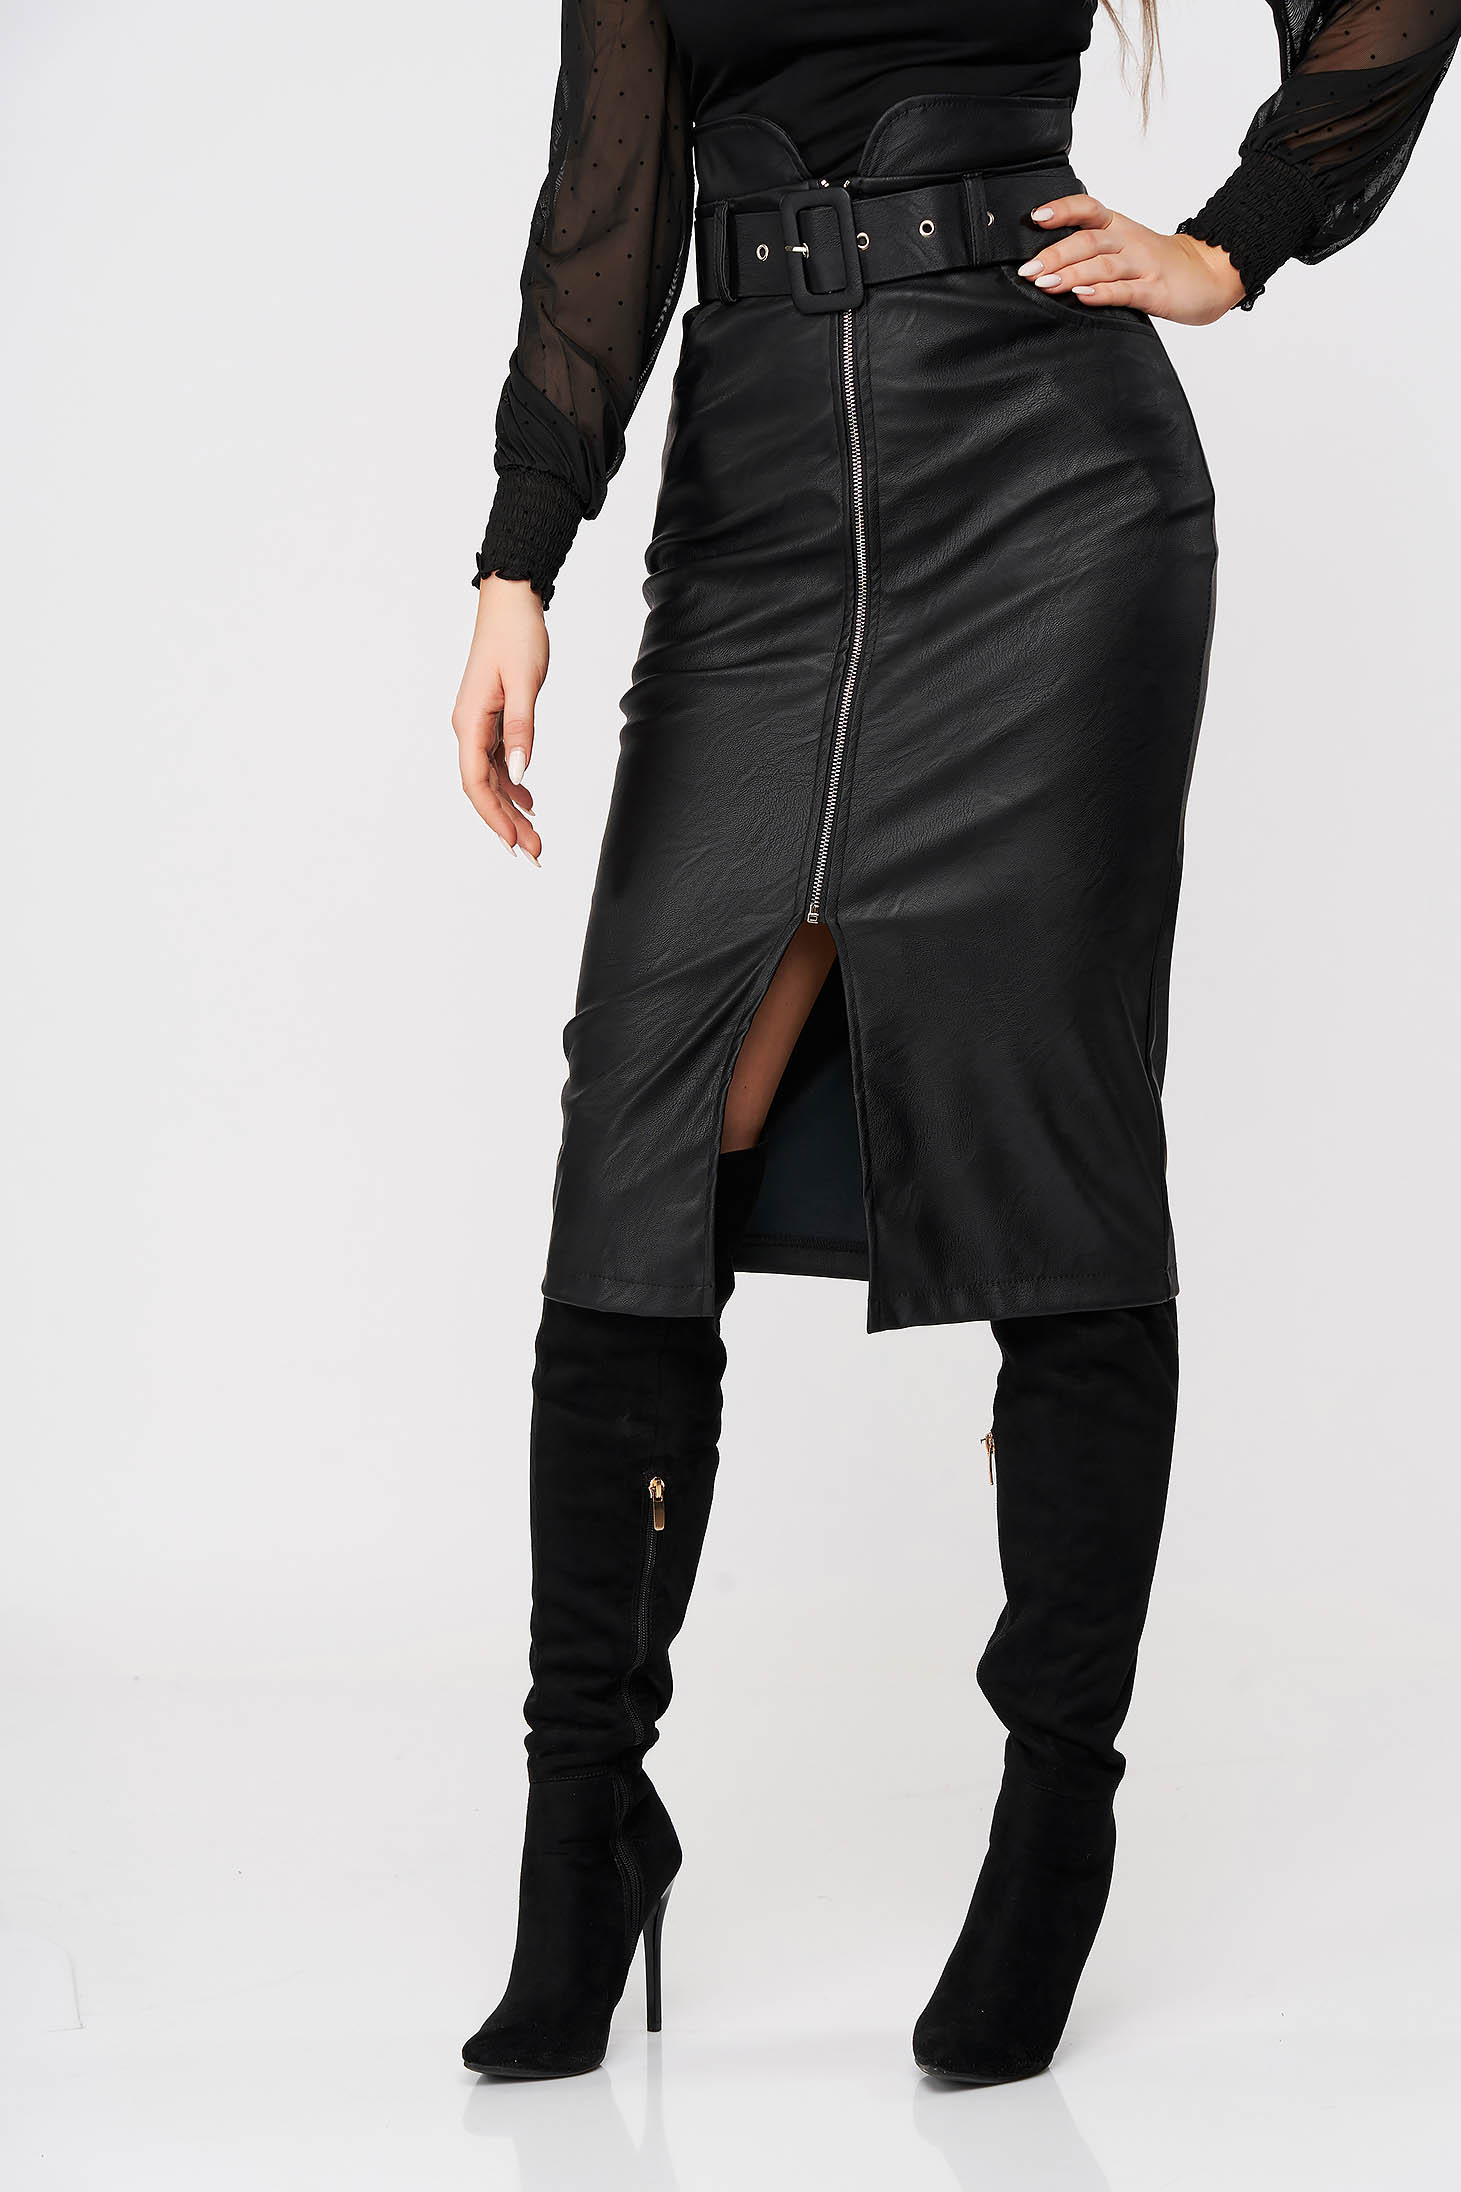 Black skirt high waisted pencil from ecological leather accessorized with belt